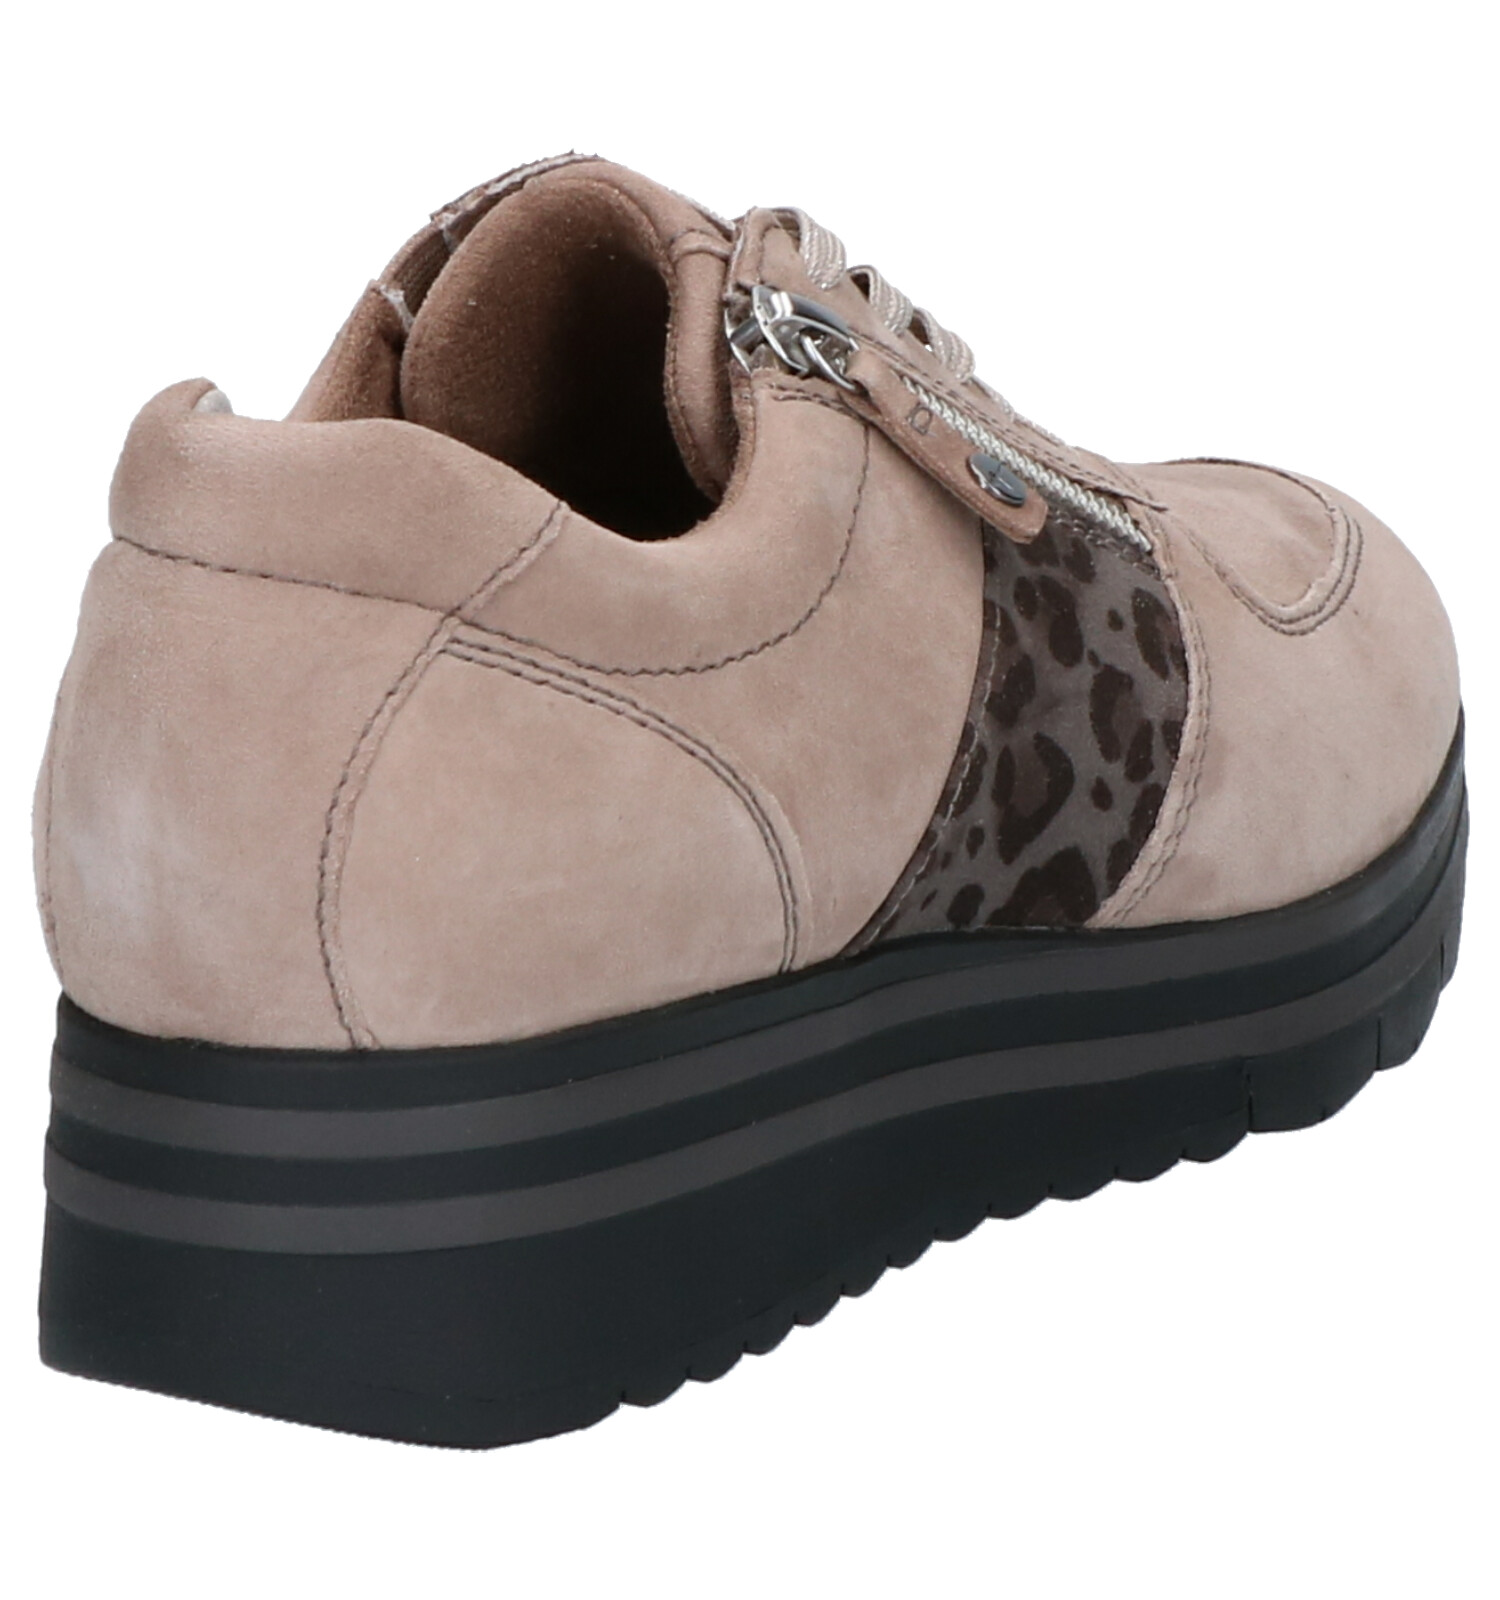 Sneakers Tamaris Taupe Fit Taupe Tamaris Relaxed Relaxed Fit lJTFcu135K